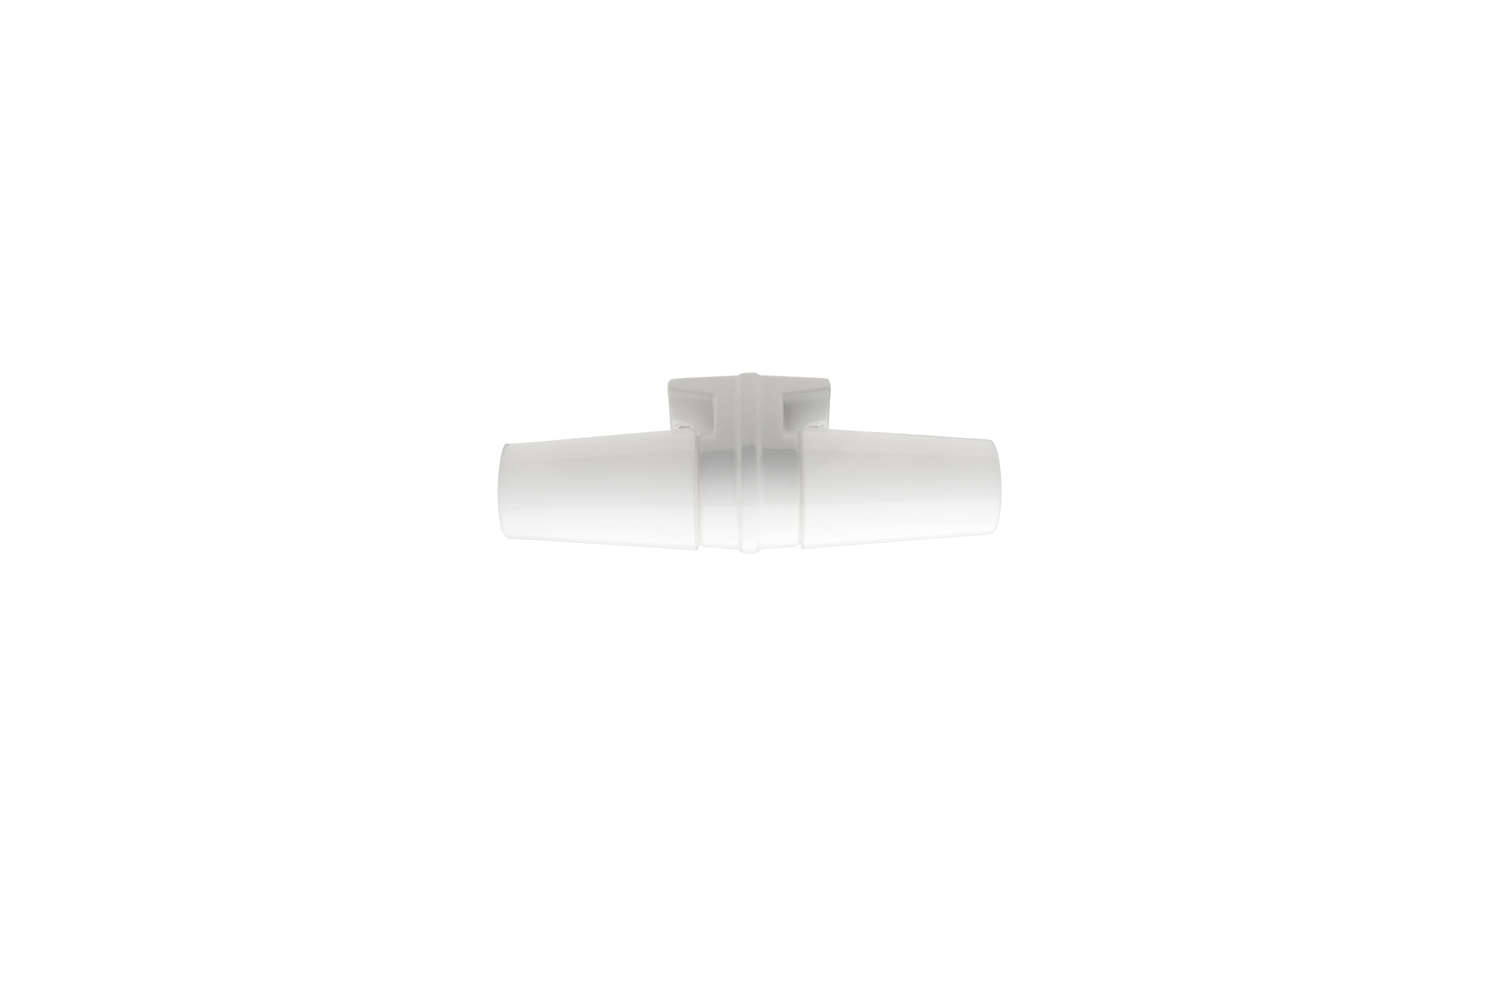 The White Porcelain Fixture Double Sconce is €88.58 at Zangra in Belgium.